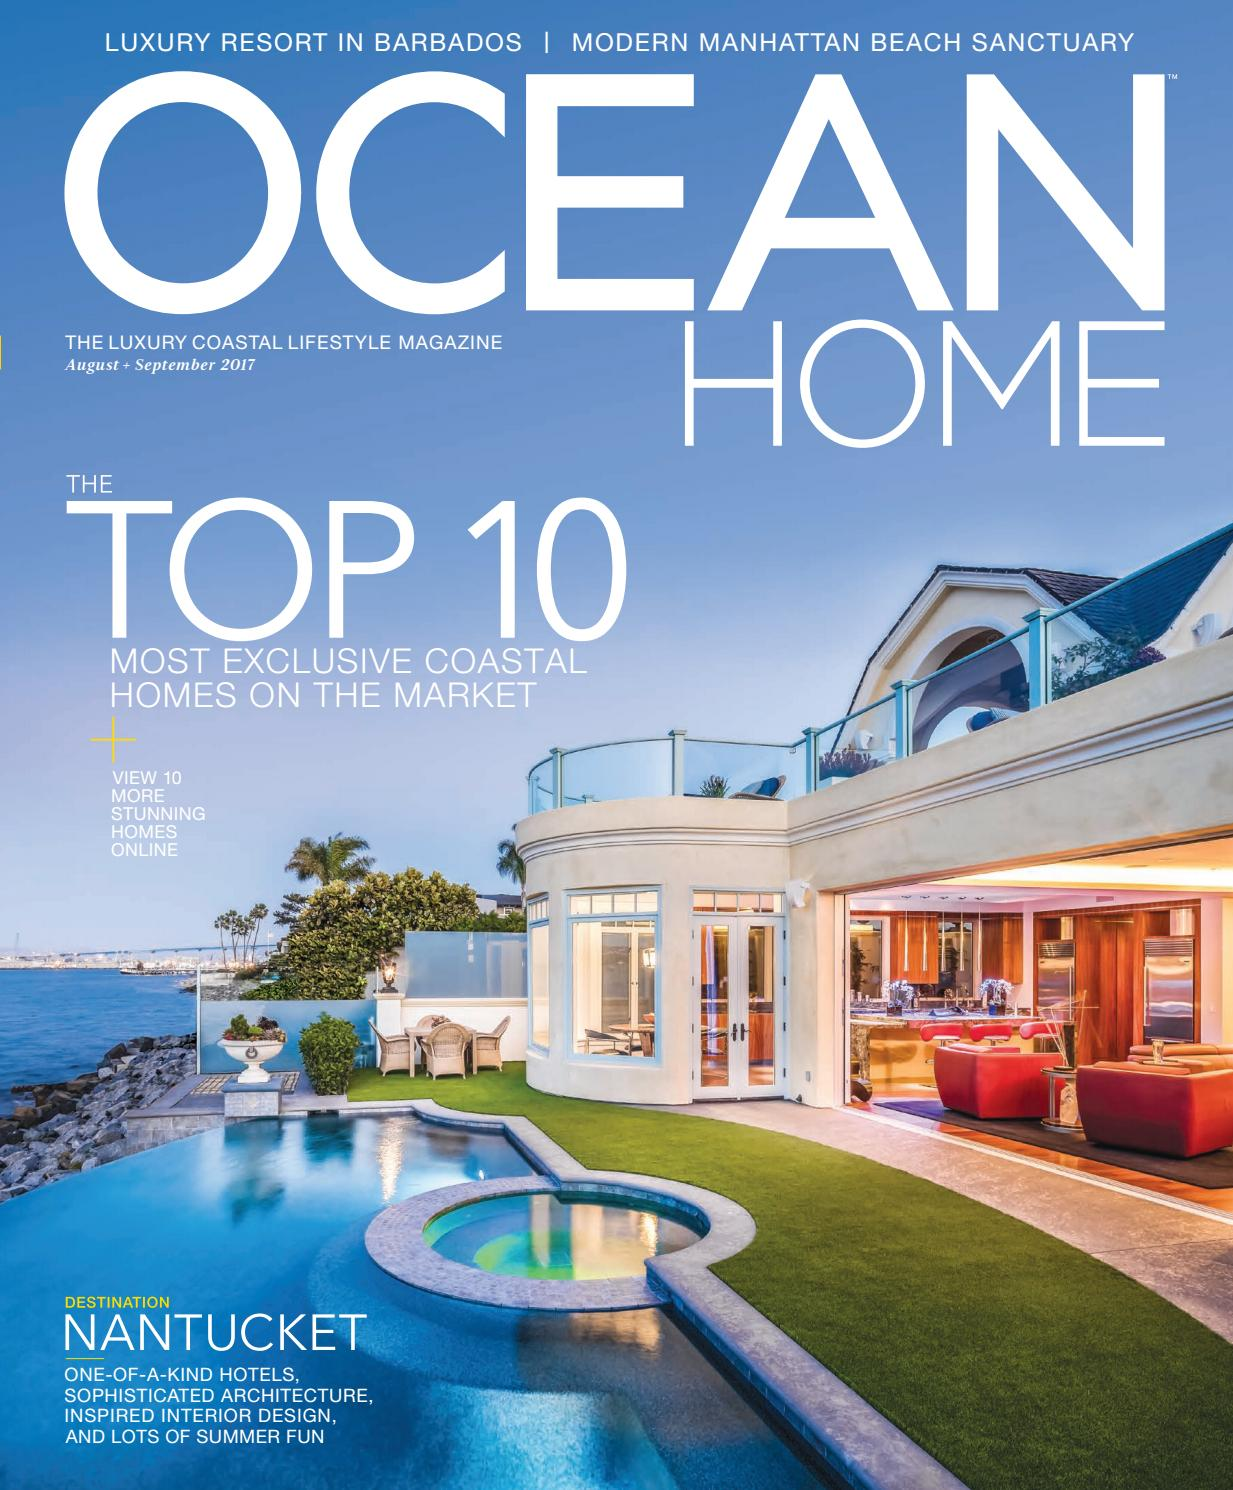 Ocean Home August/September 2017 by Ocean Home Magazine - issuu